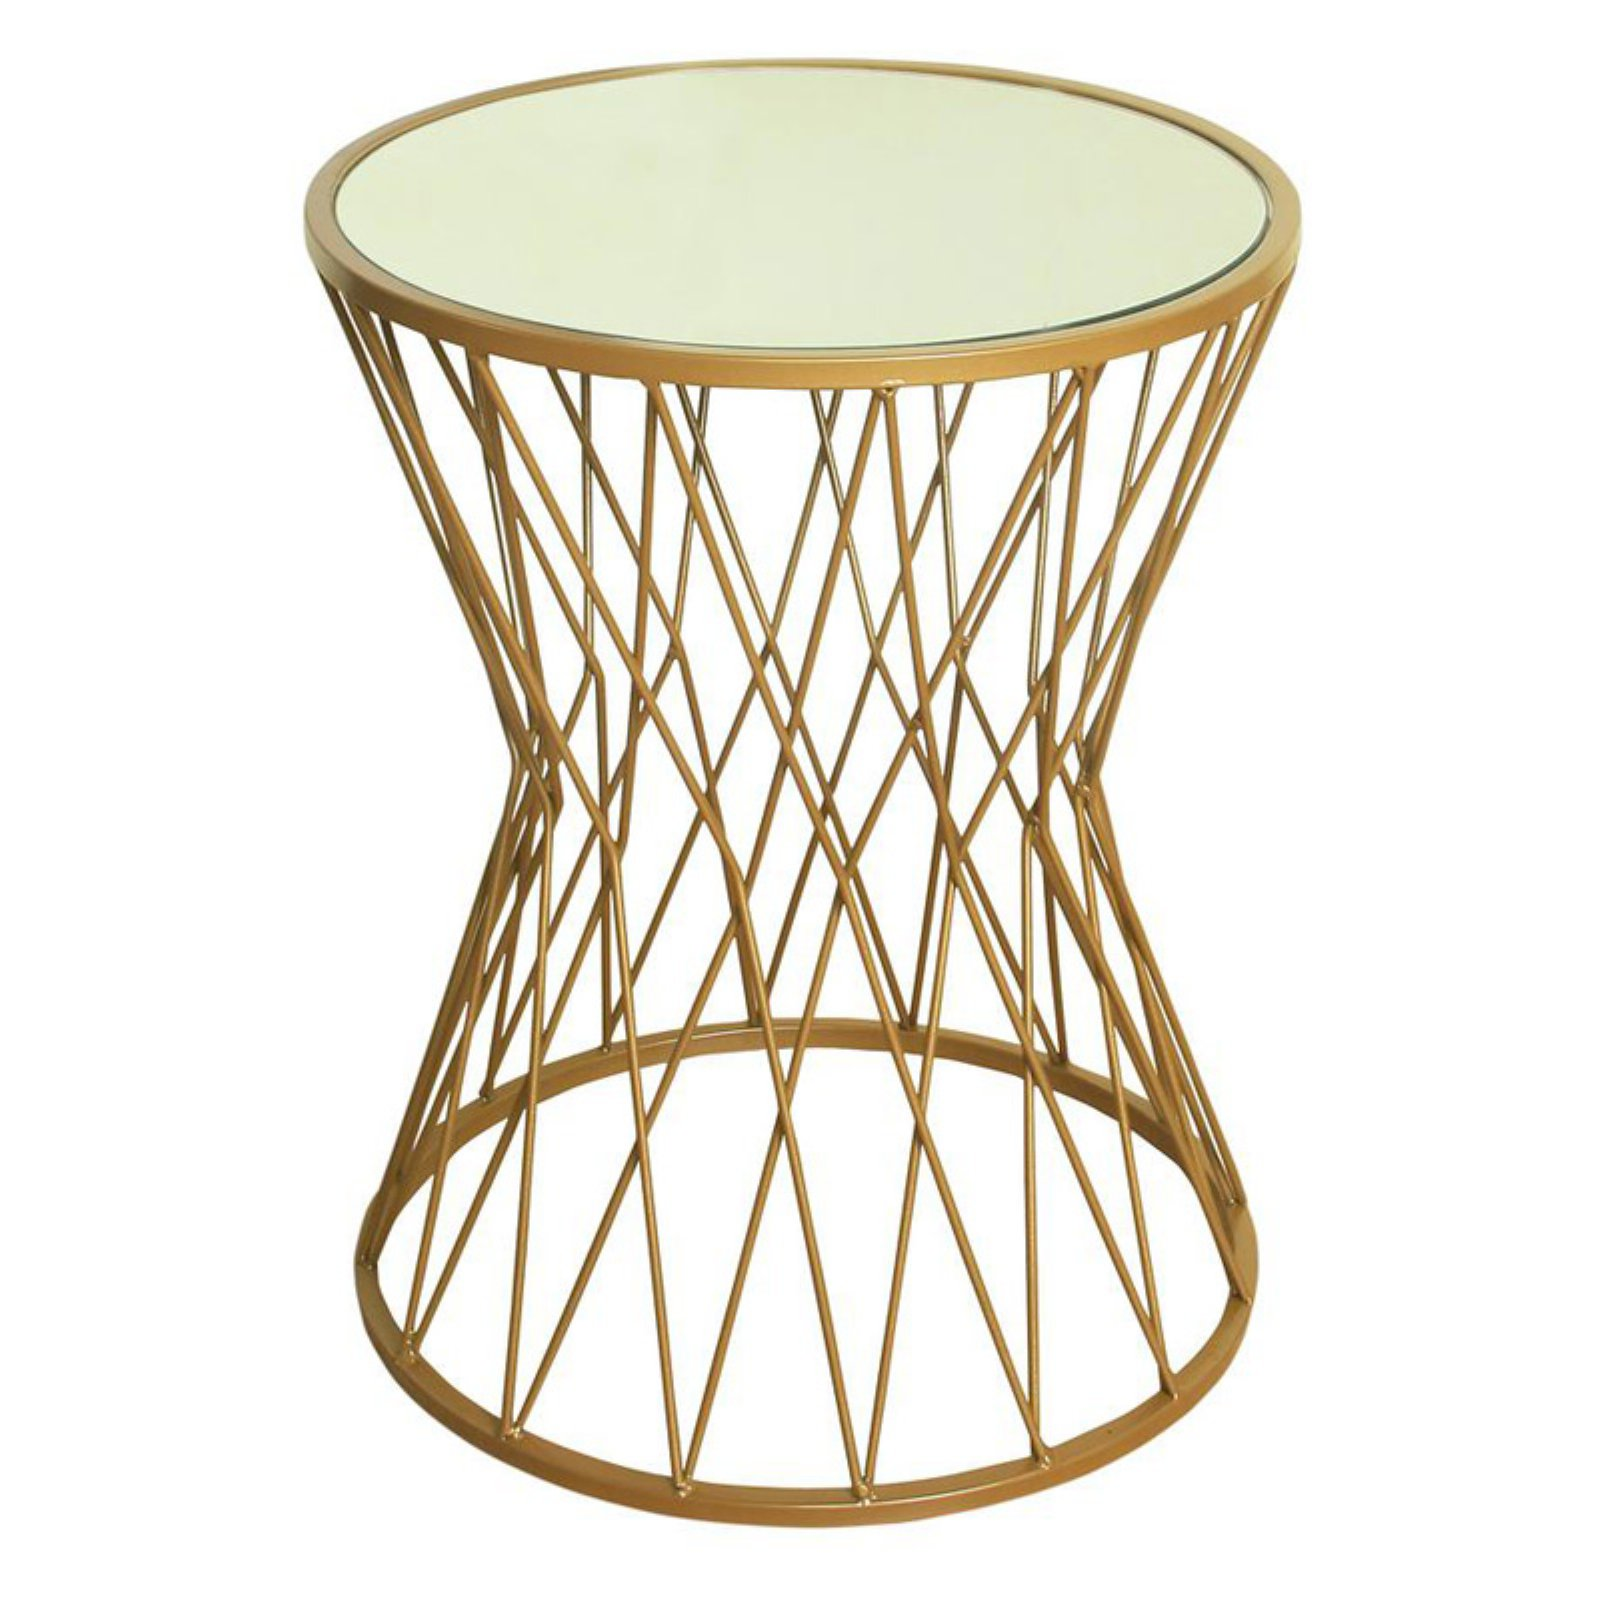 homepop hourglass metal accent table gold mirror top inuse ture couch vintage brass and glass coffee round mosaic garden chair set rustic chic end tables white mirrored outdoor